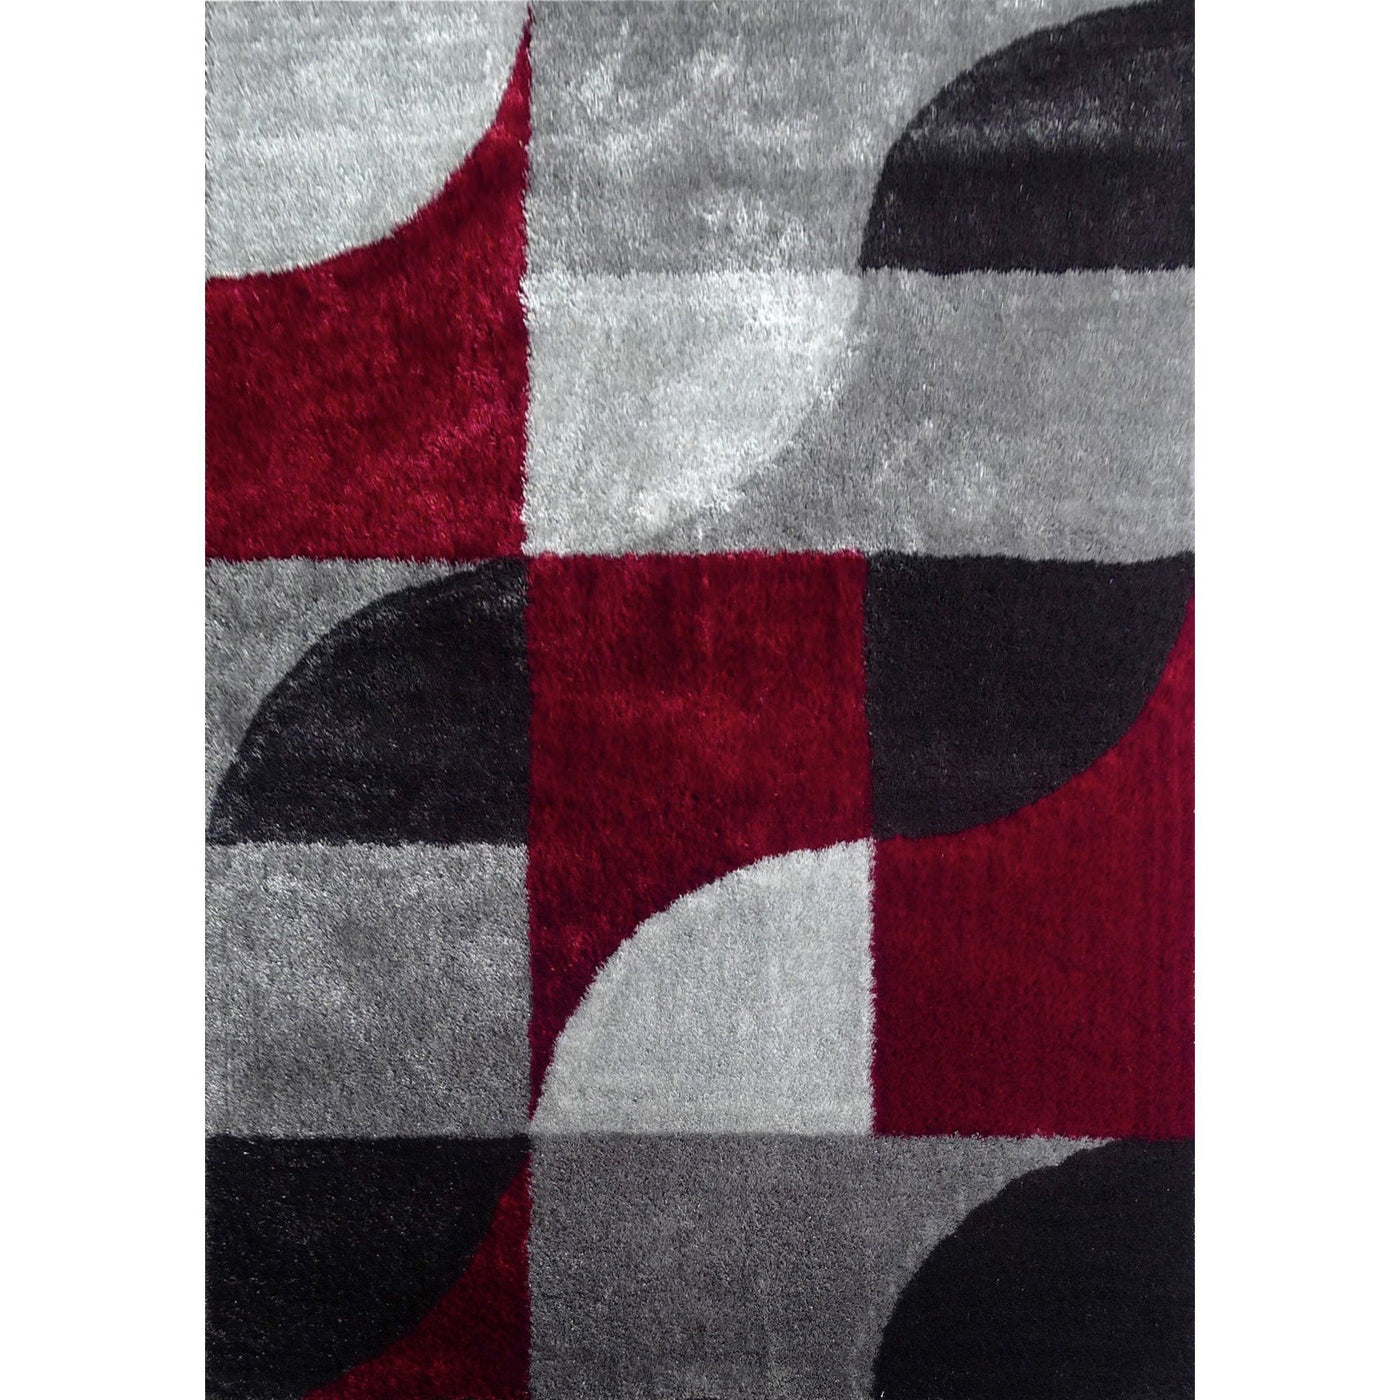 area grey hand factory blackred and wayfair tufted rug red pdx plus black rugs